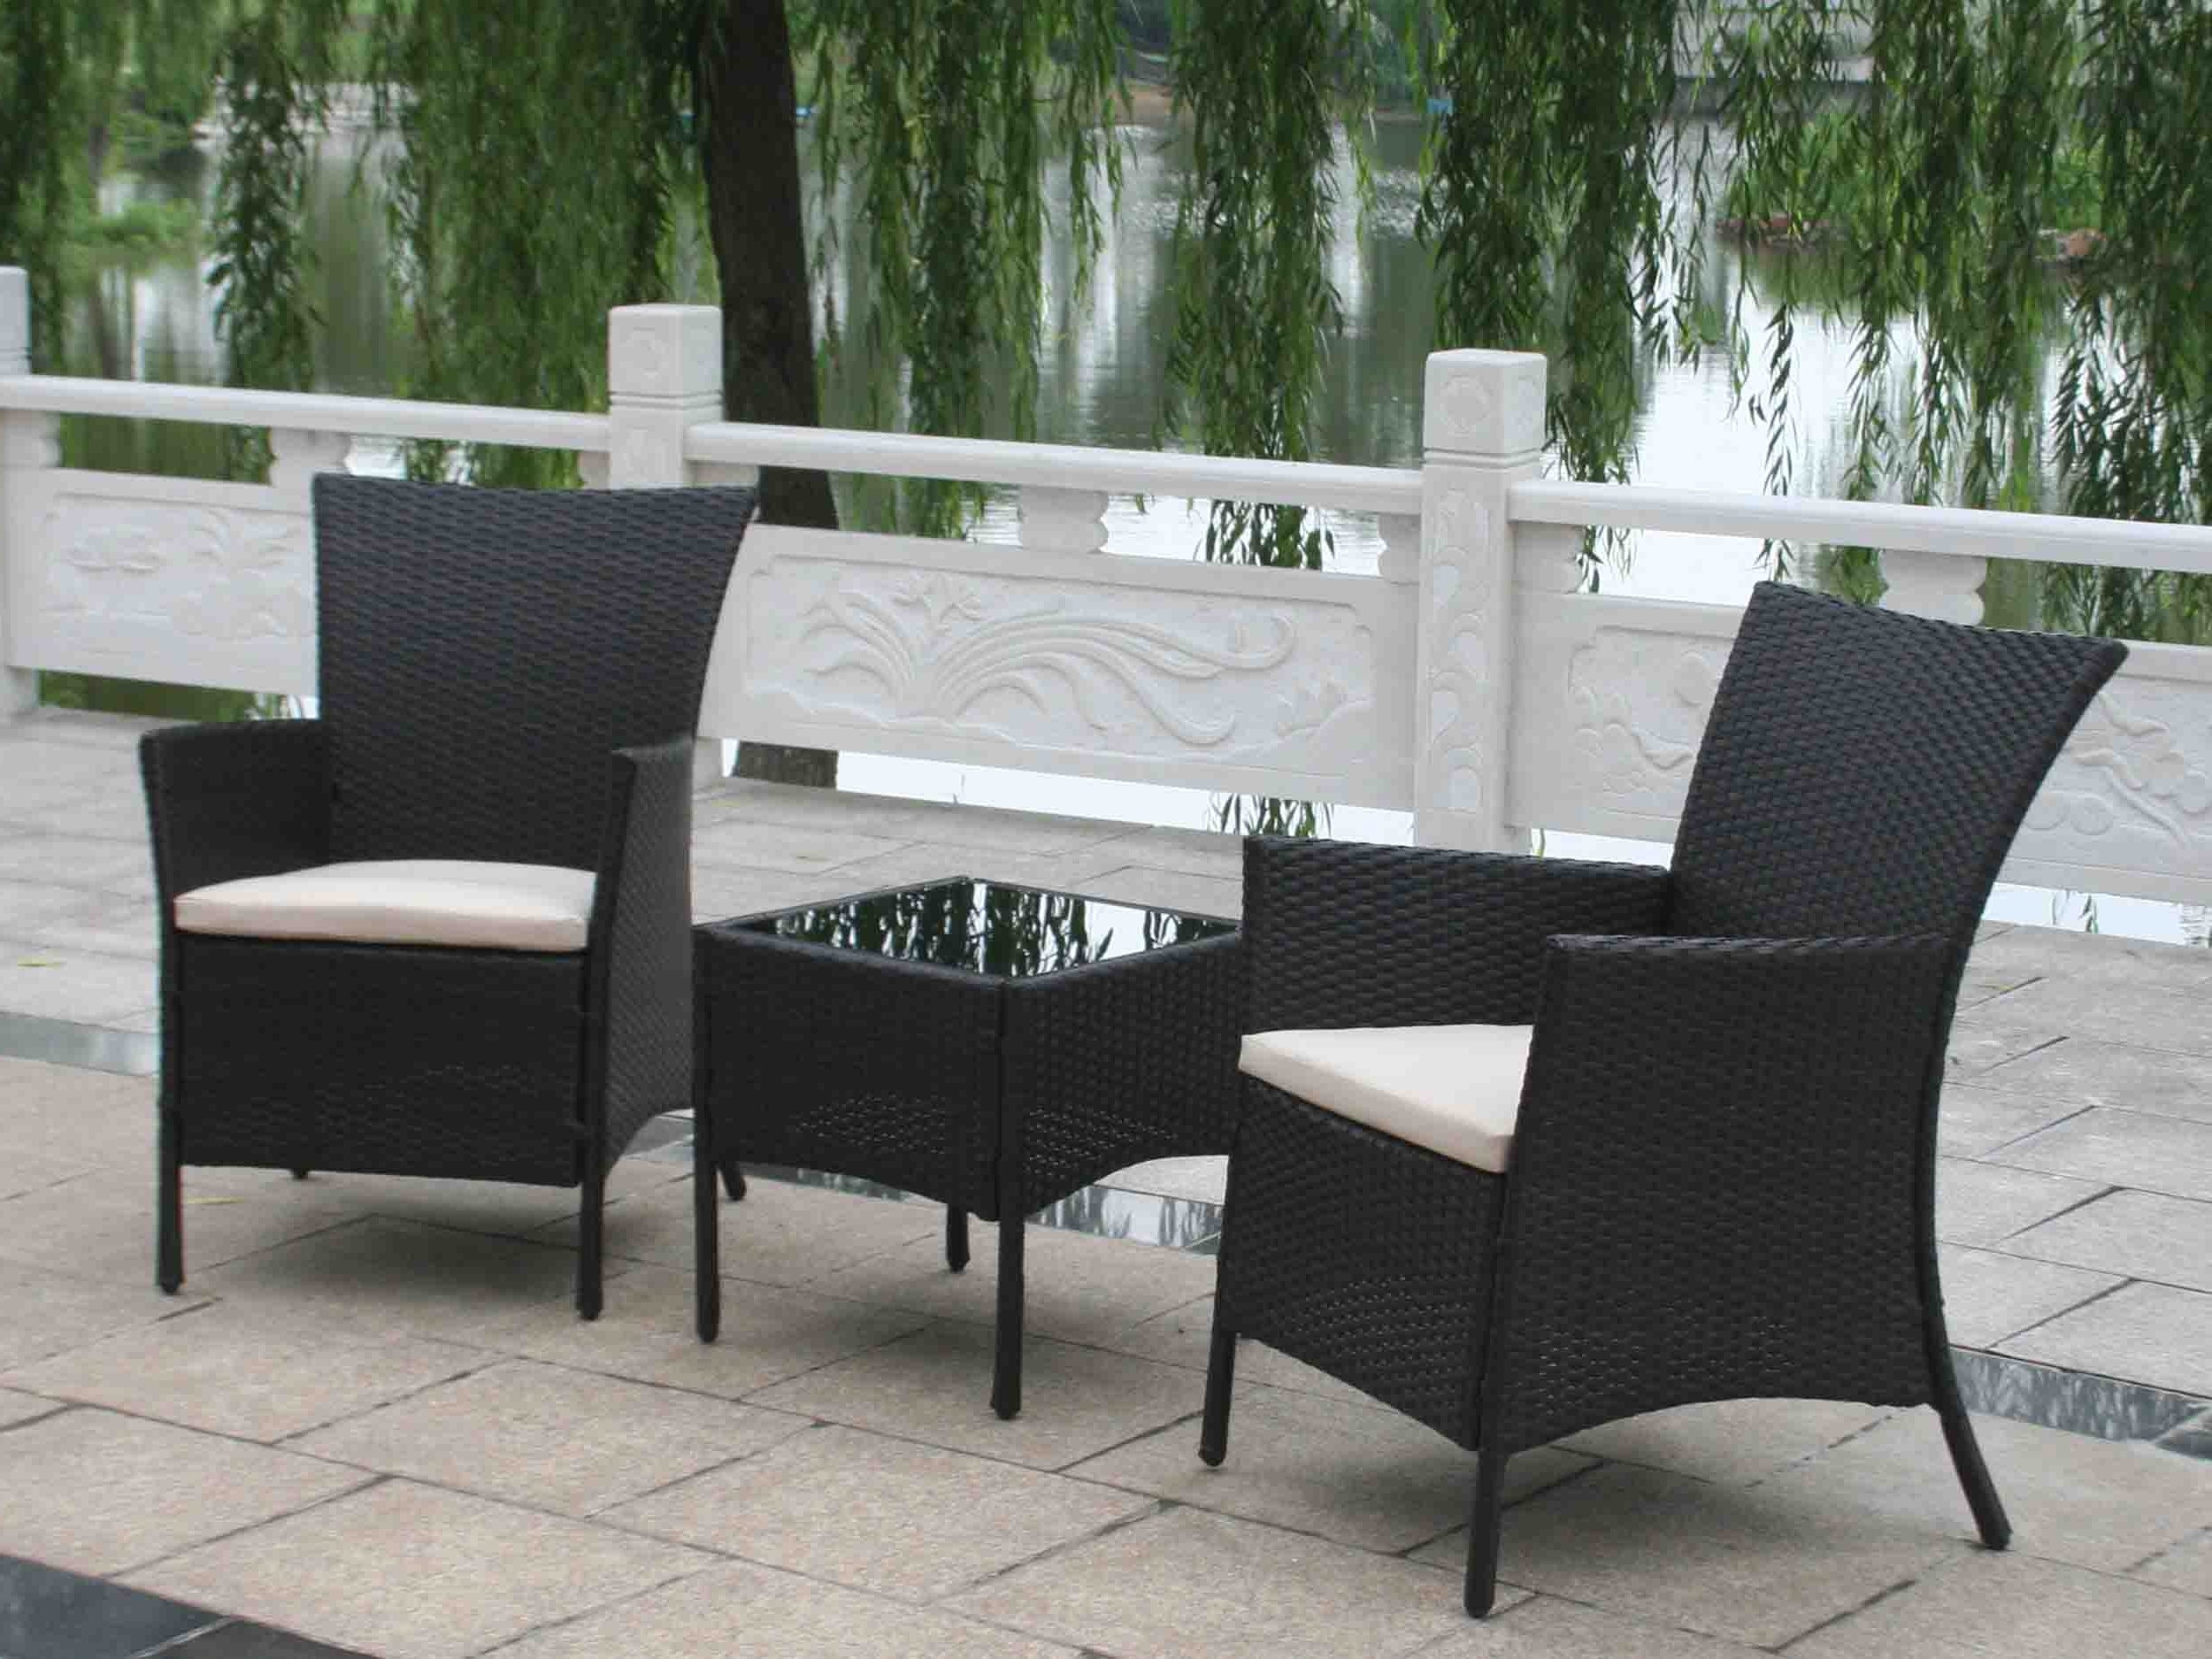 Best And Newest Patio : Black Wicker Patio Furniture Black Wicker Patio Furniture Throughout Black Patio Conversation Sets (View 13 of 15)